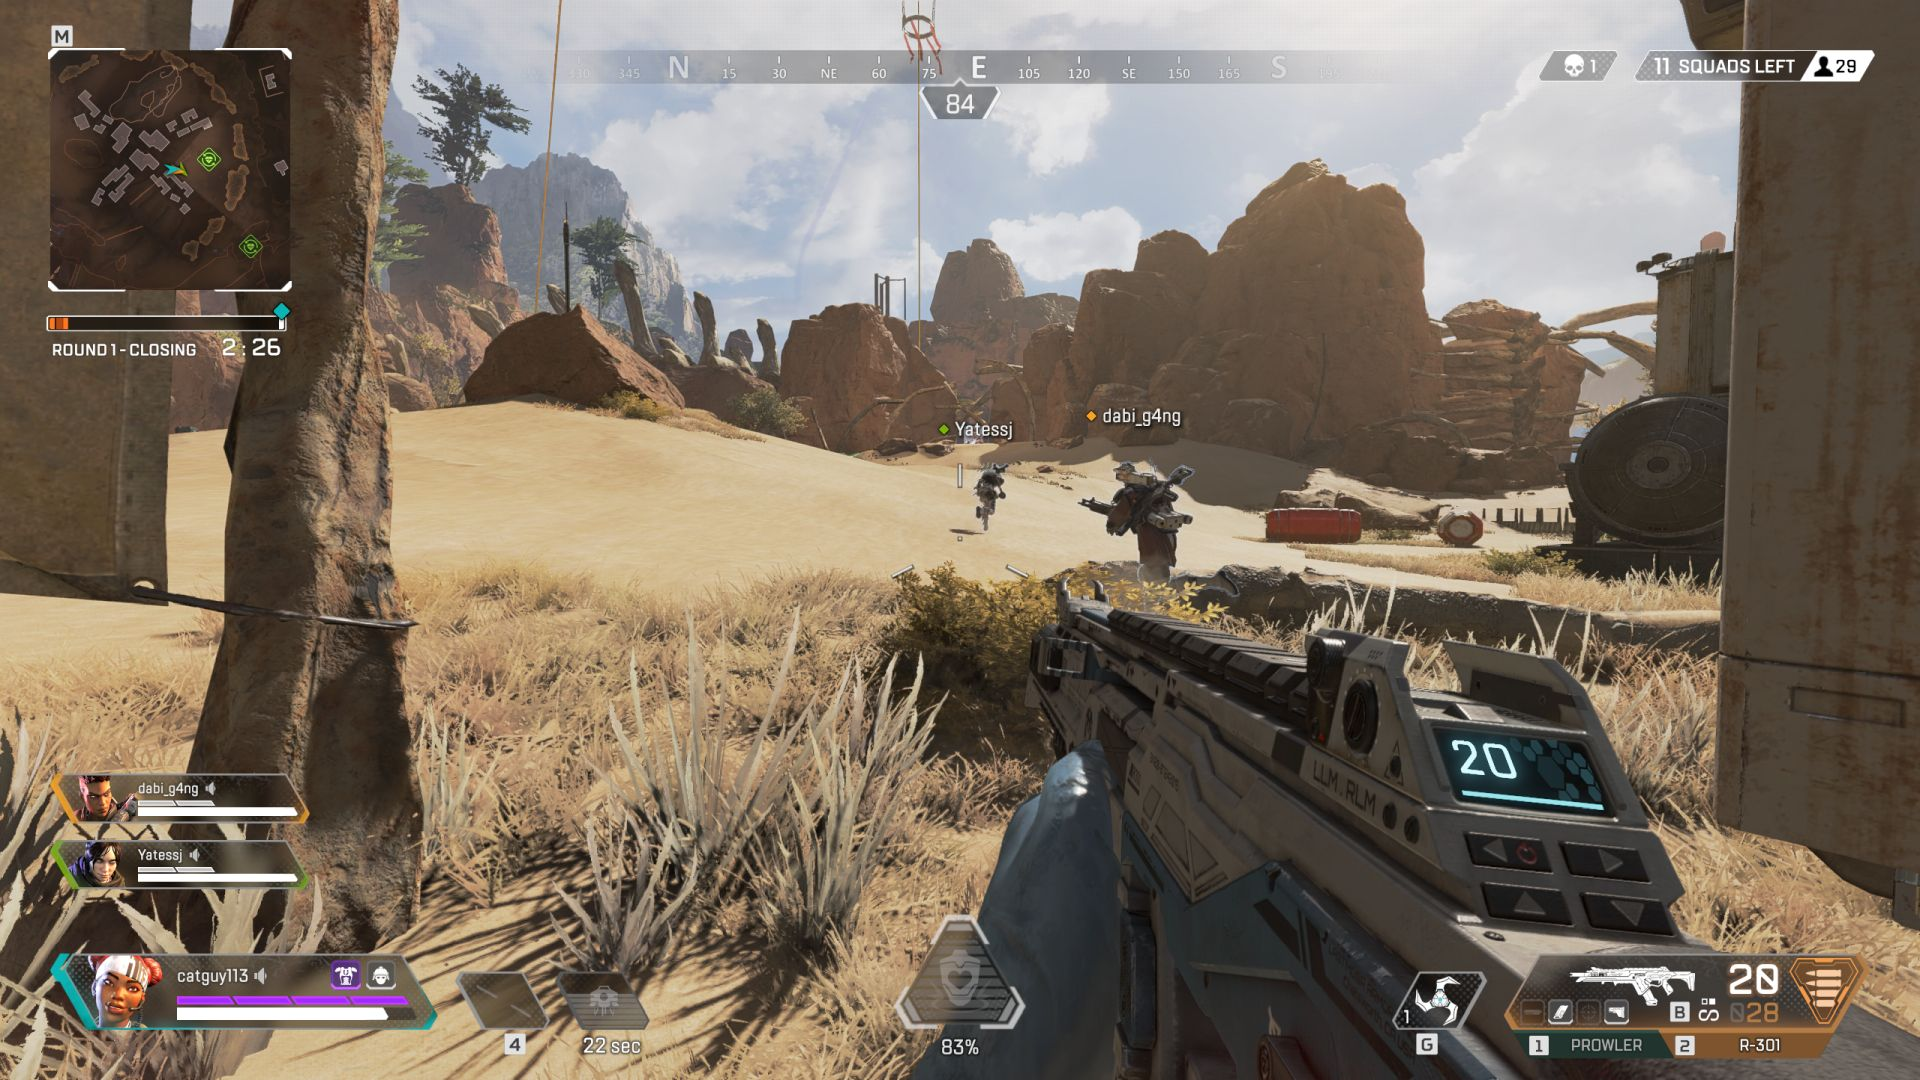 apex-legends-screenshots11 – Kopie